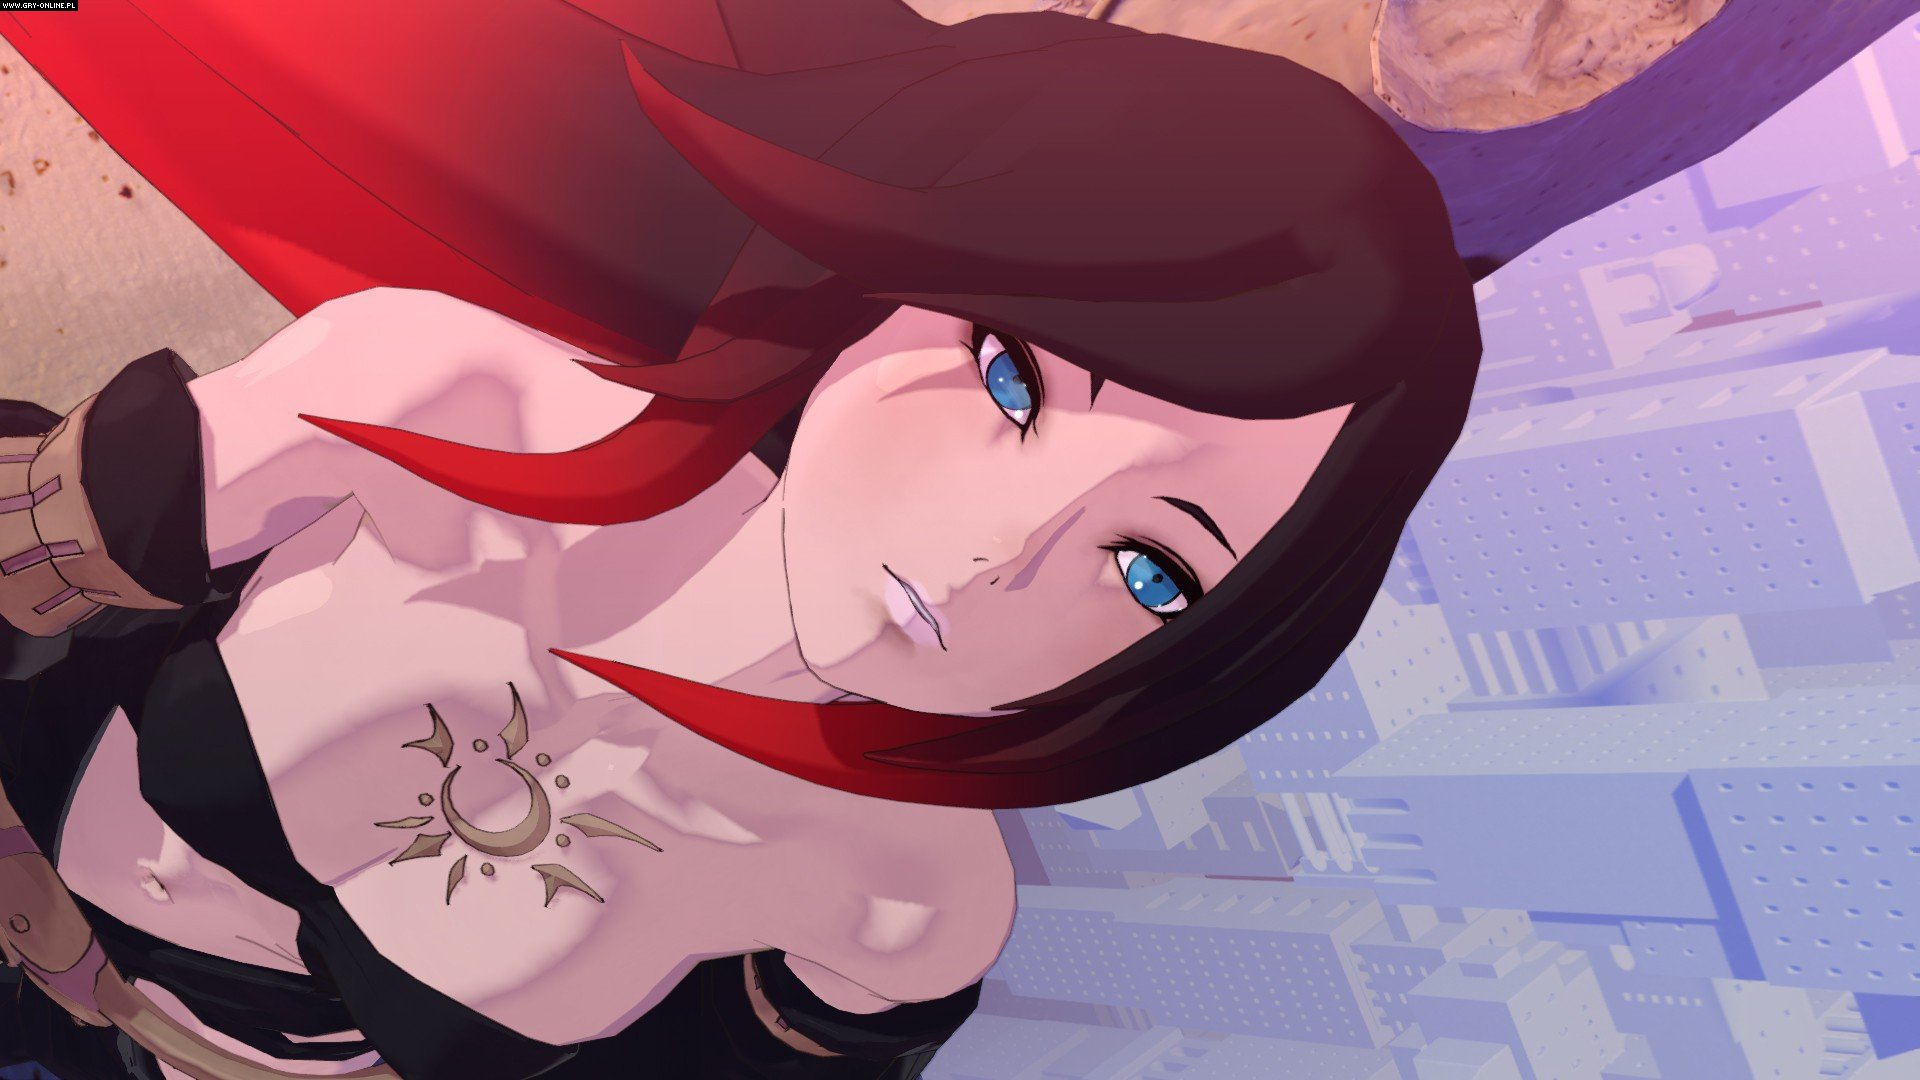 Gravity Rush 2 PS4 Gry Screen 5/60, Sony Interactive Entertainment